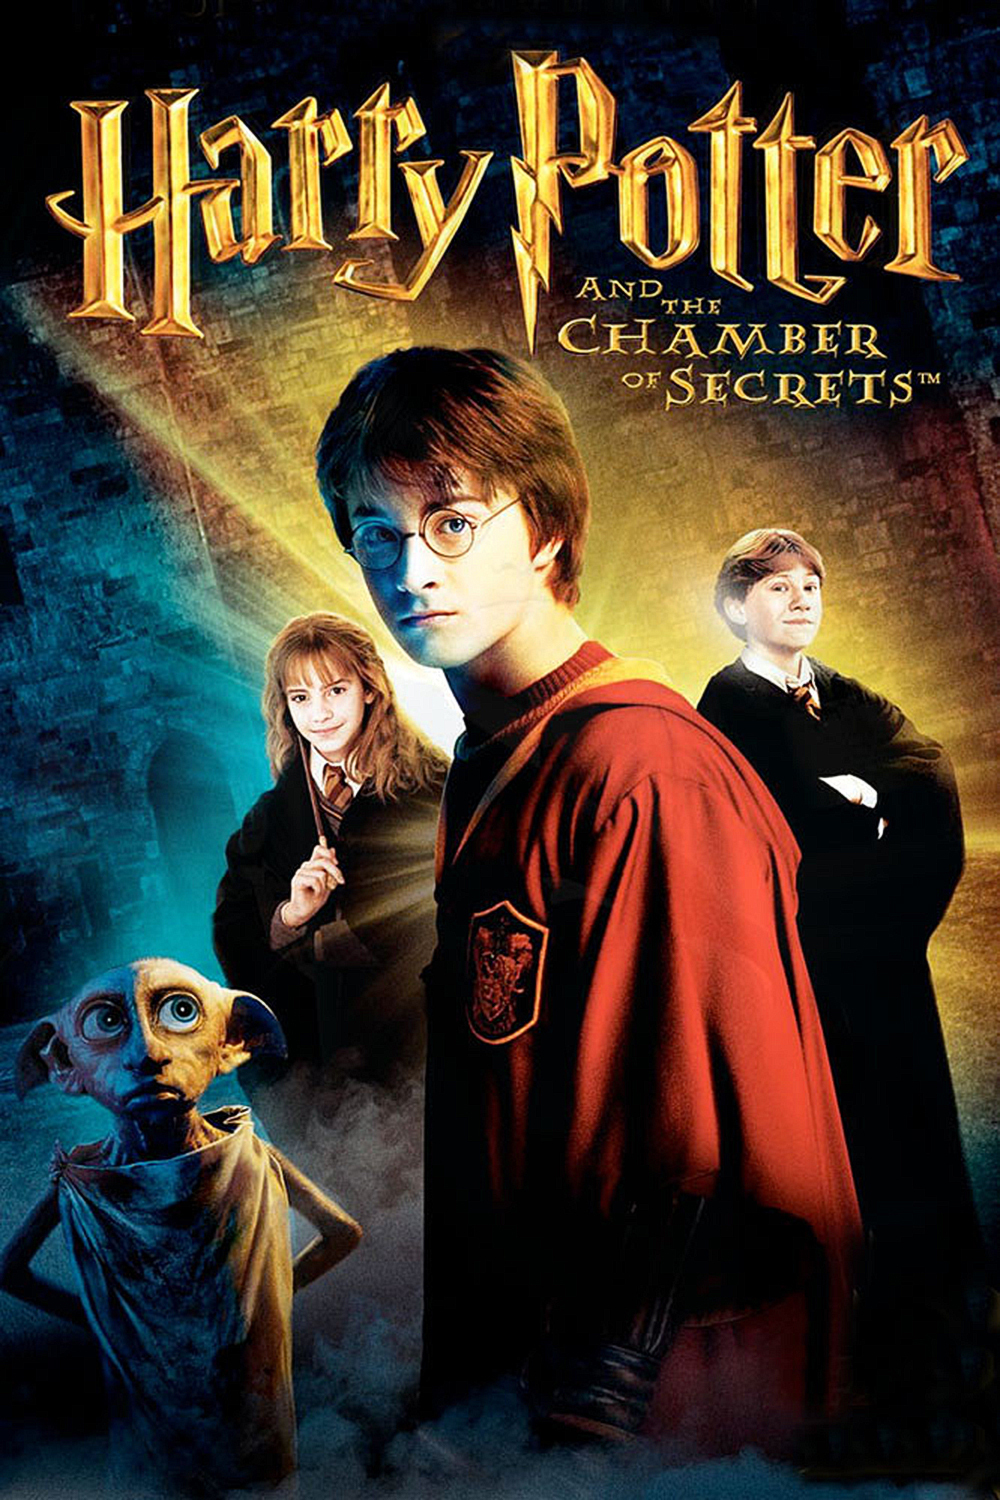 hp and the chamber of secrets poster.jpg